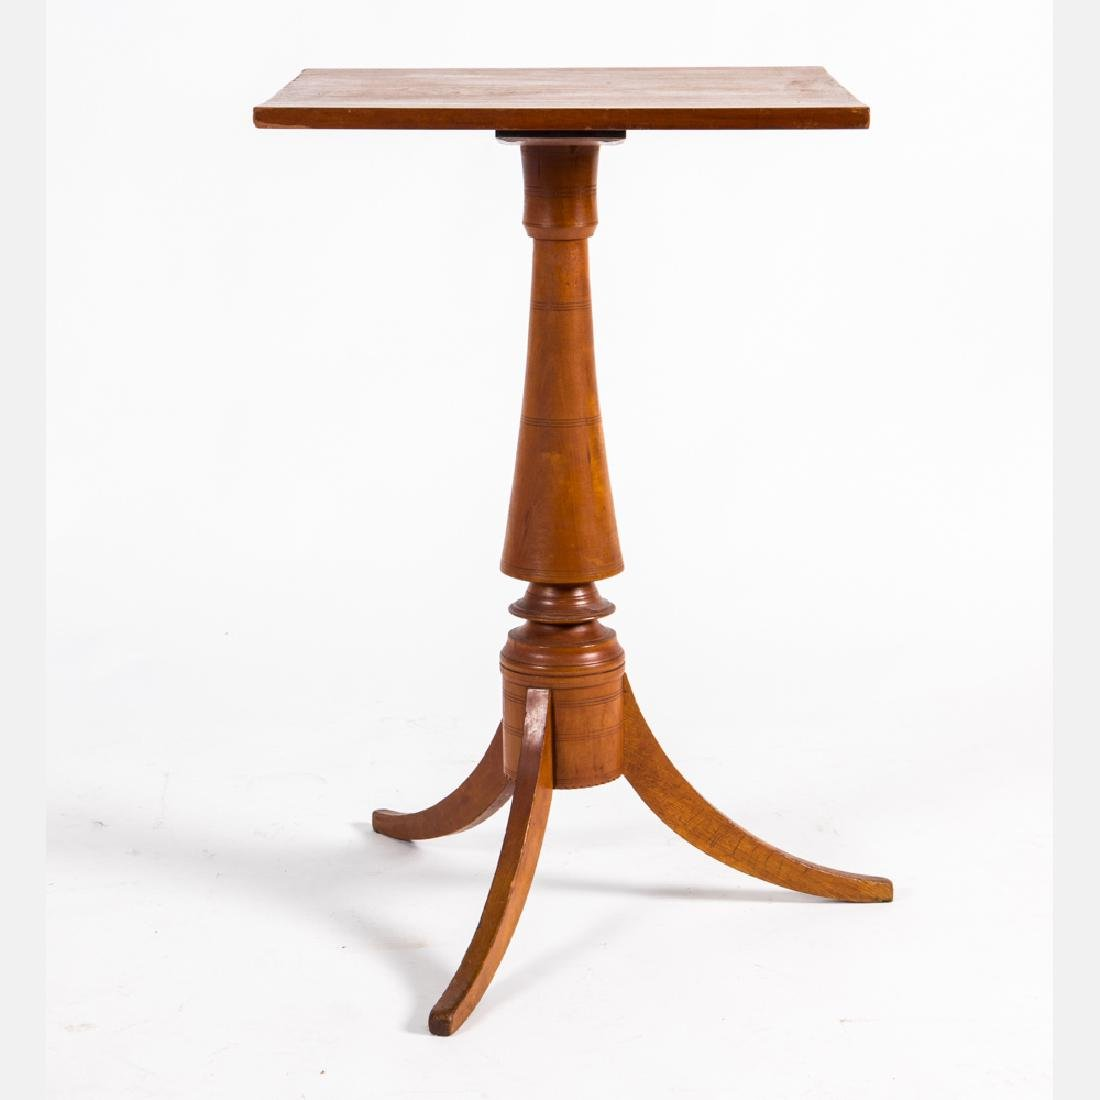 An American Cherry Side Table, Early 20th Century.